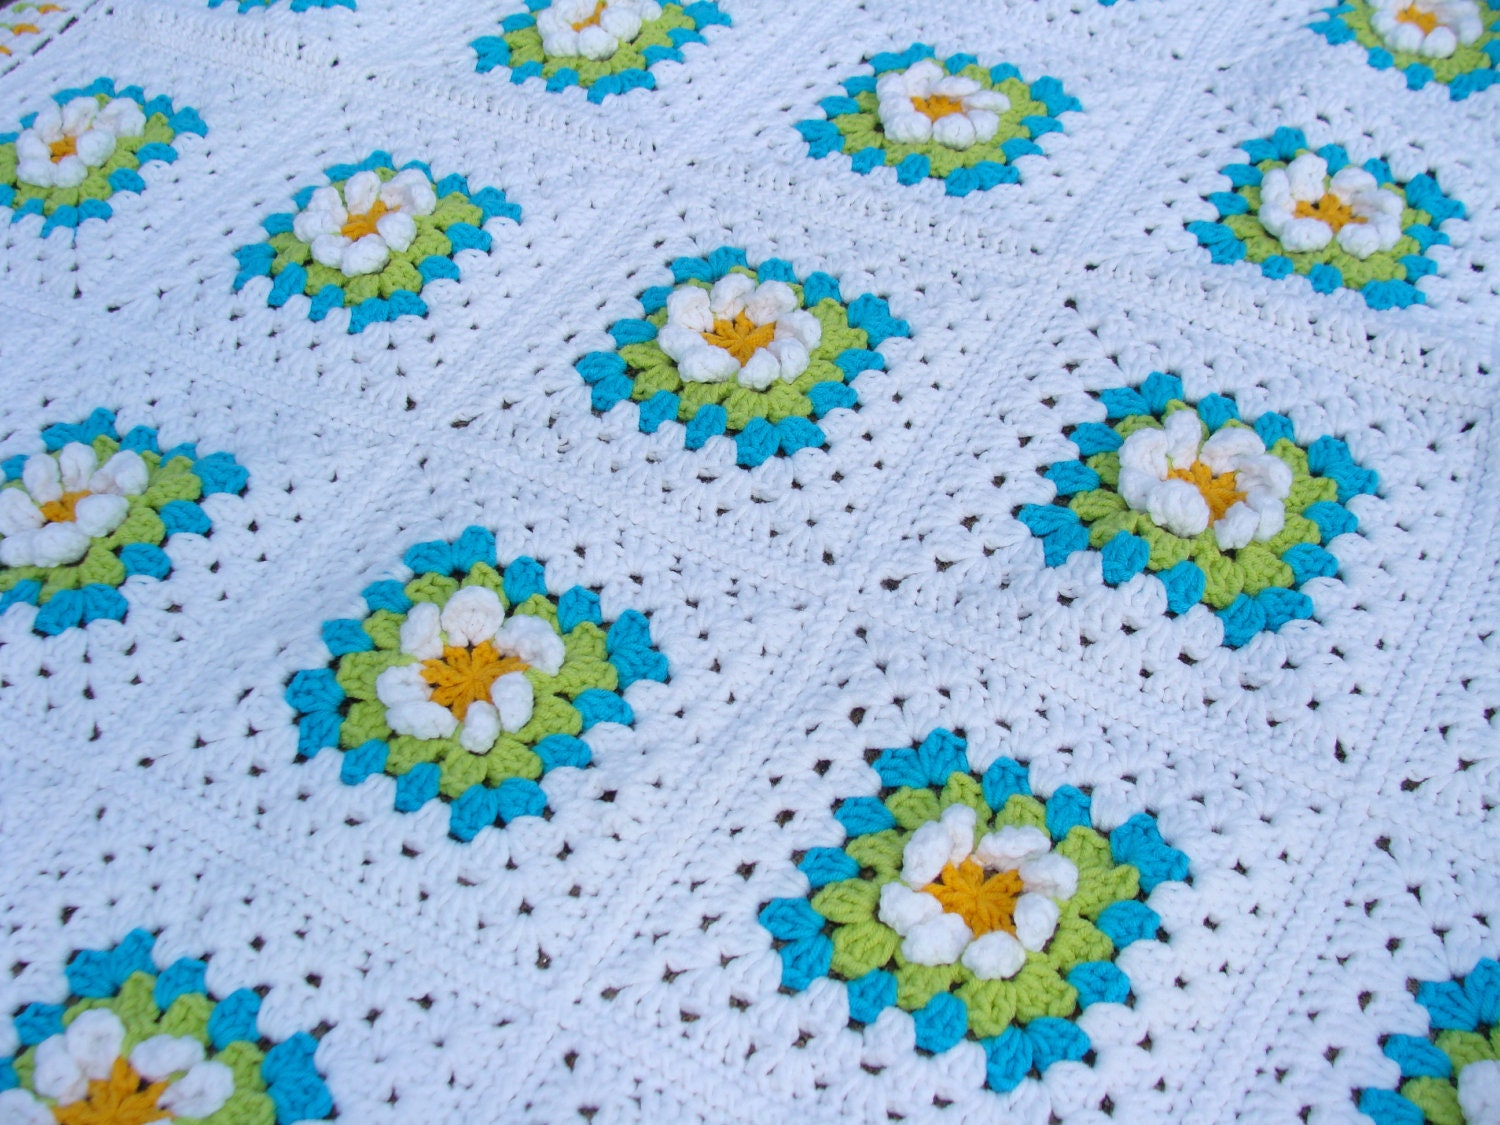 Crochet Flowers Baby Blanket Granny Square White Yellow Green Turquoise Blue Spring Summer Home Decor by dodofit on Etsy - hopeblankets